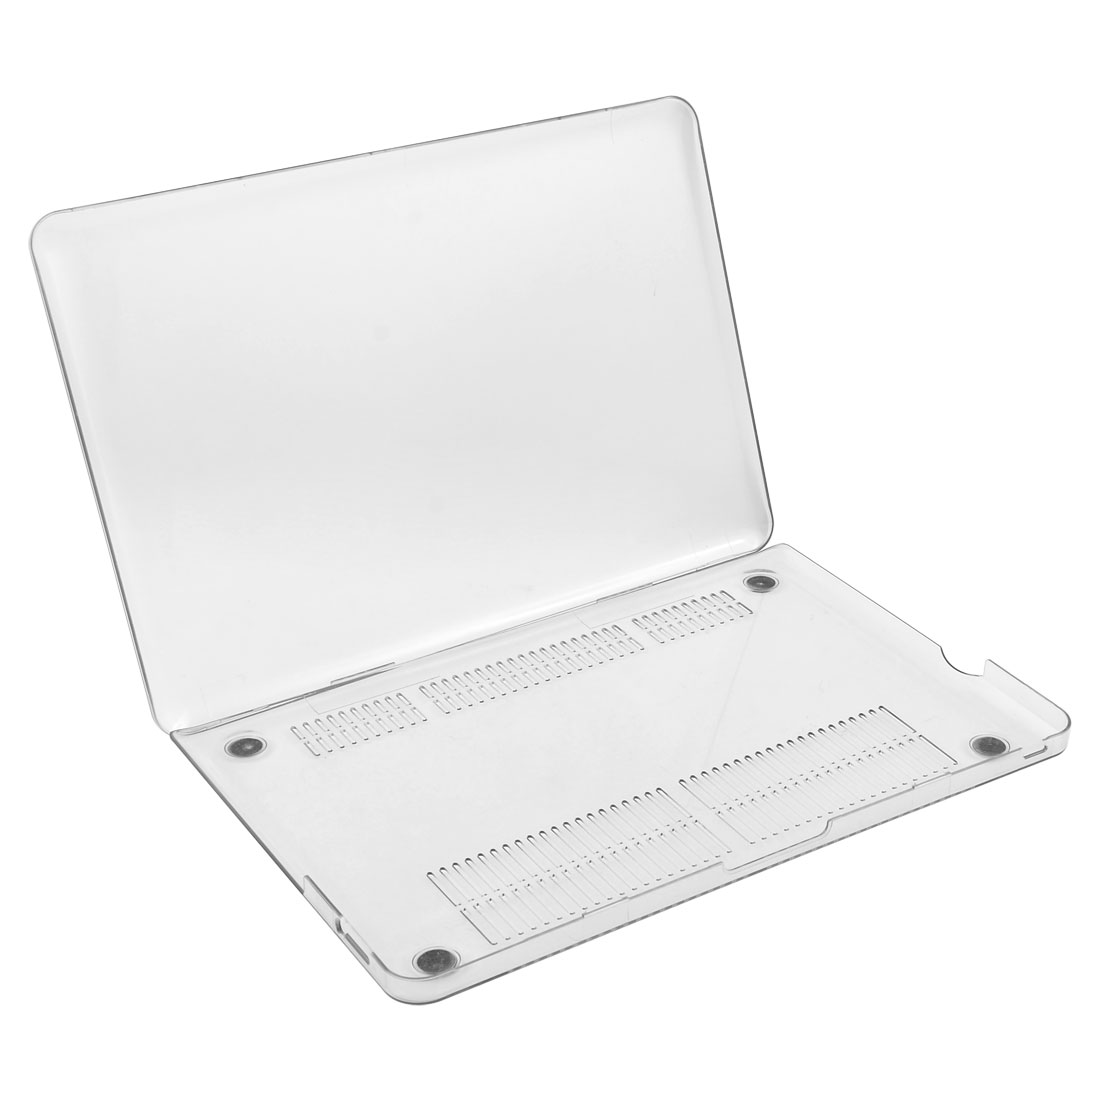 Plastic Portable Hard Case Cover Protector Clear for Macbook Pro 13.3 Inch